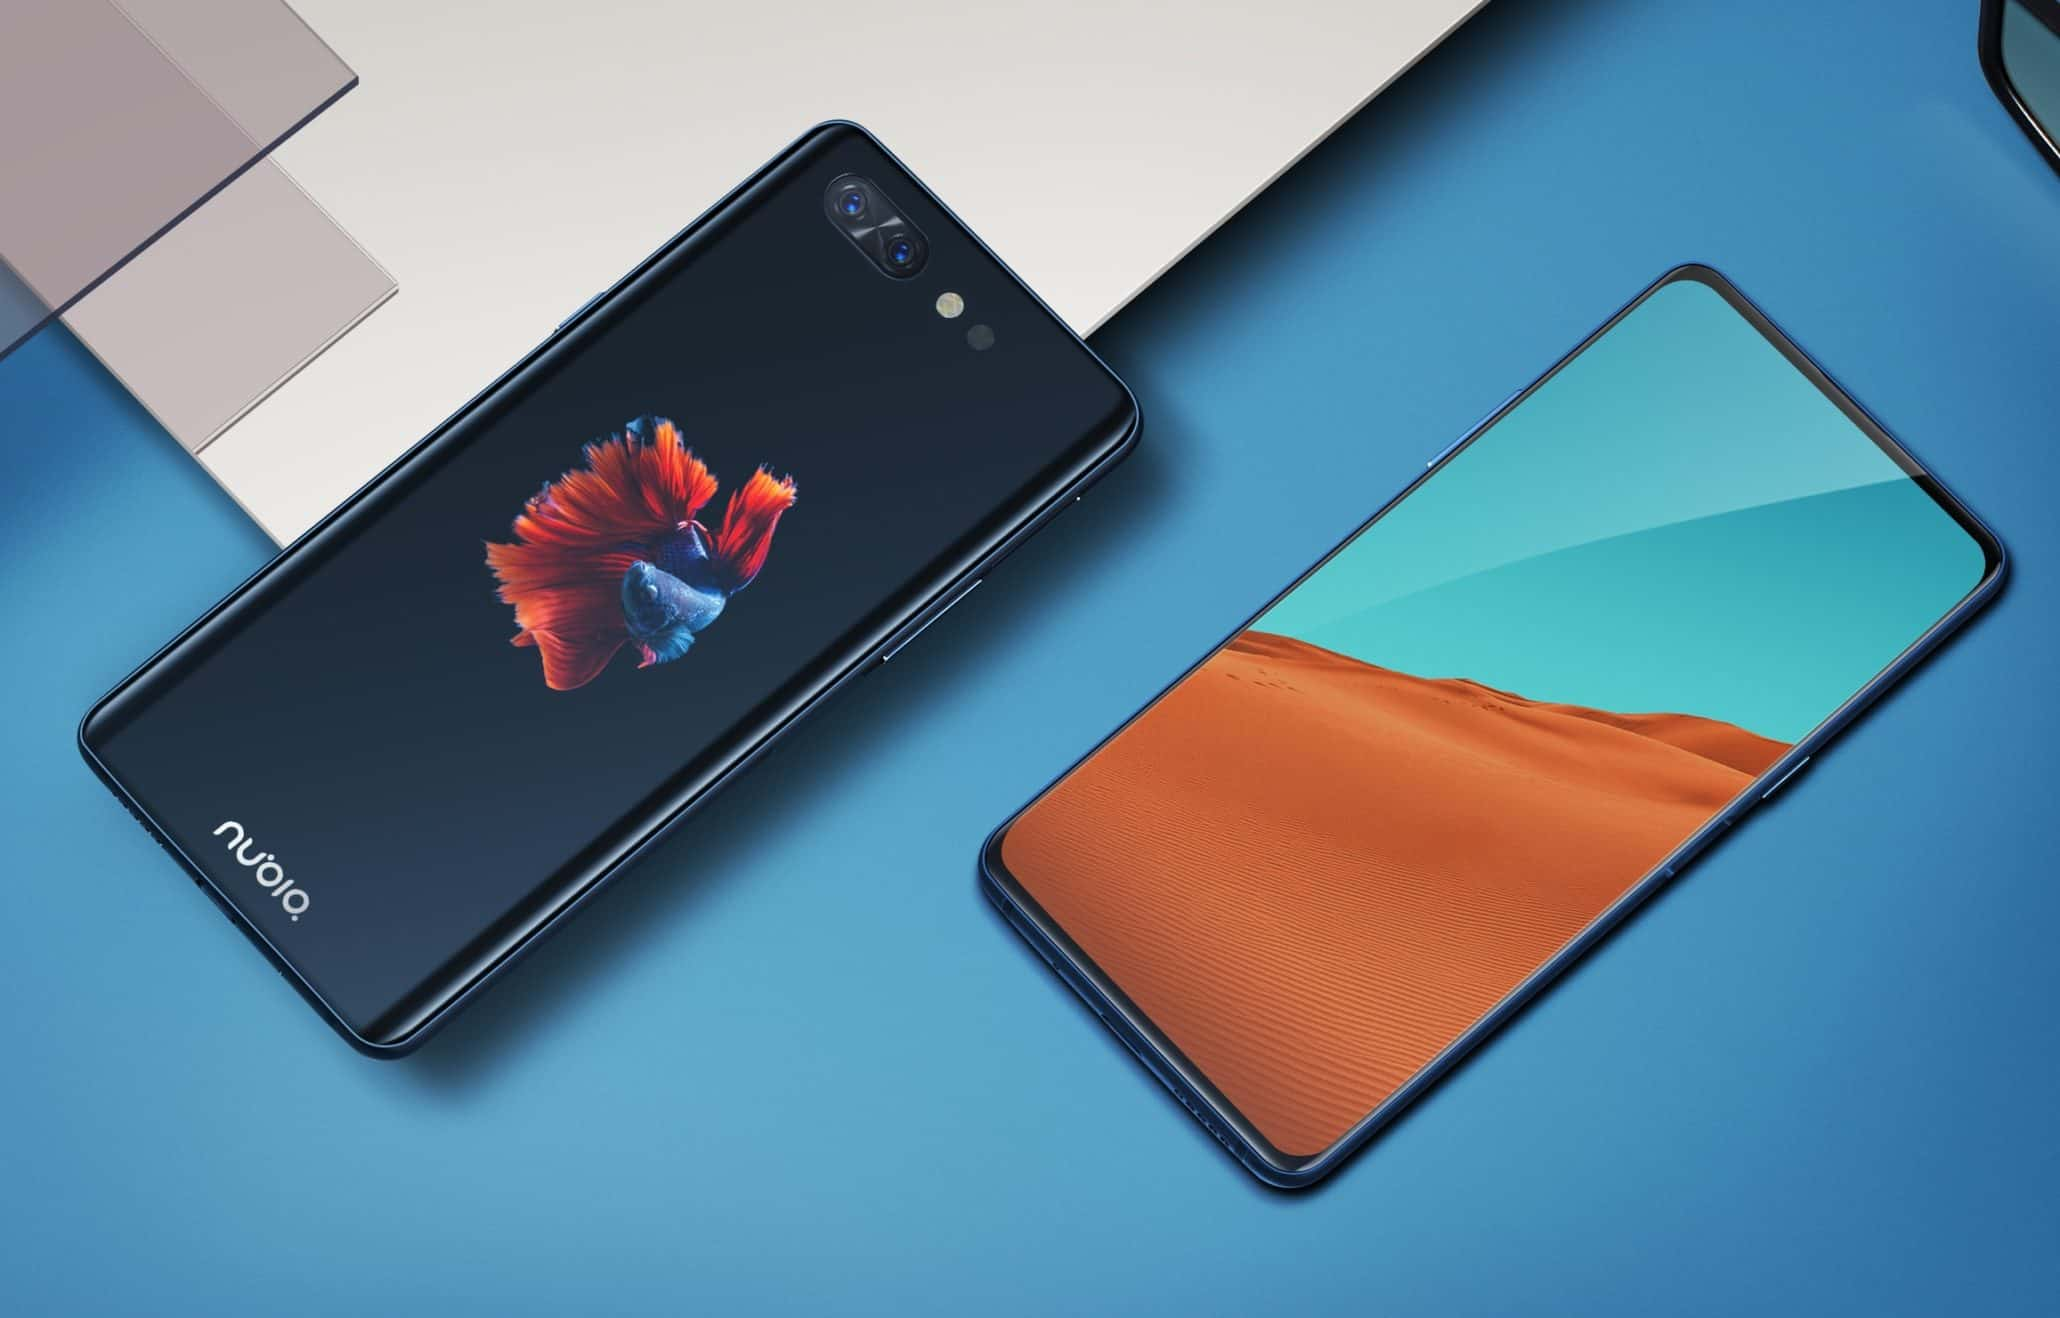 Top 5 Design Trends To Expect in Upcoming Smartphones - 2019 - 6